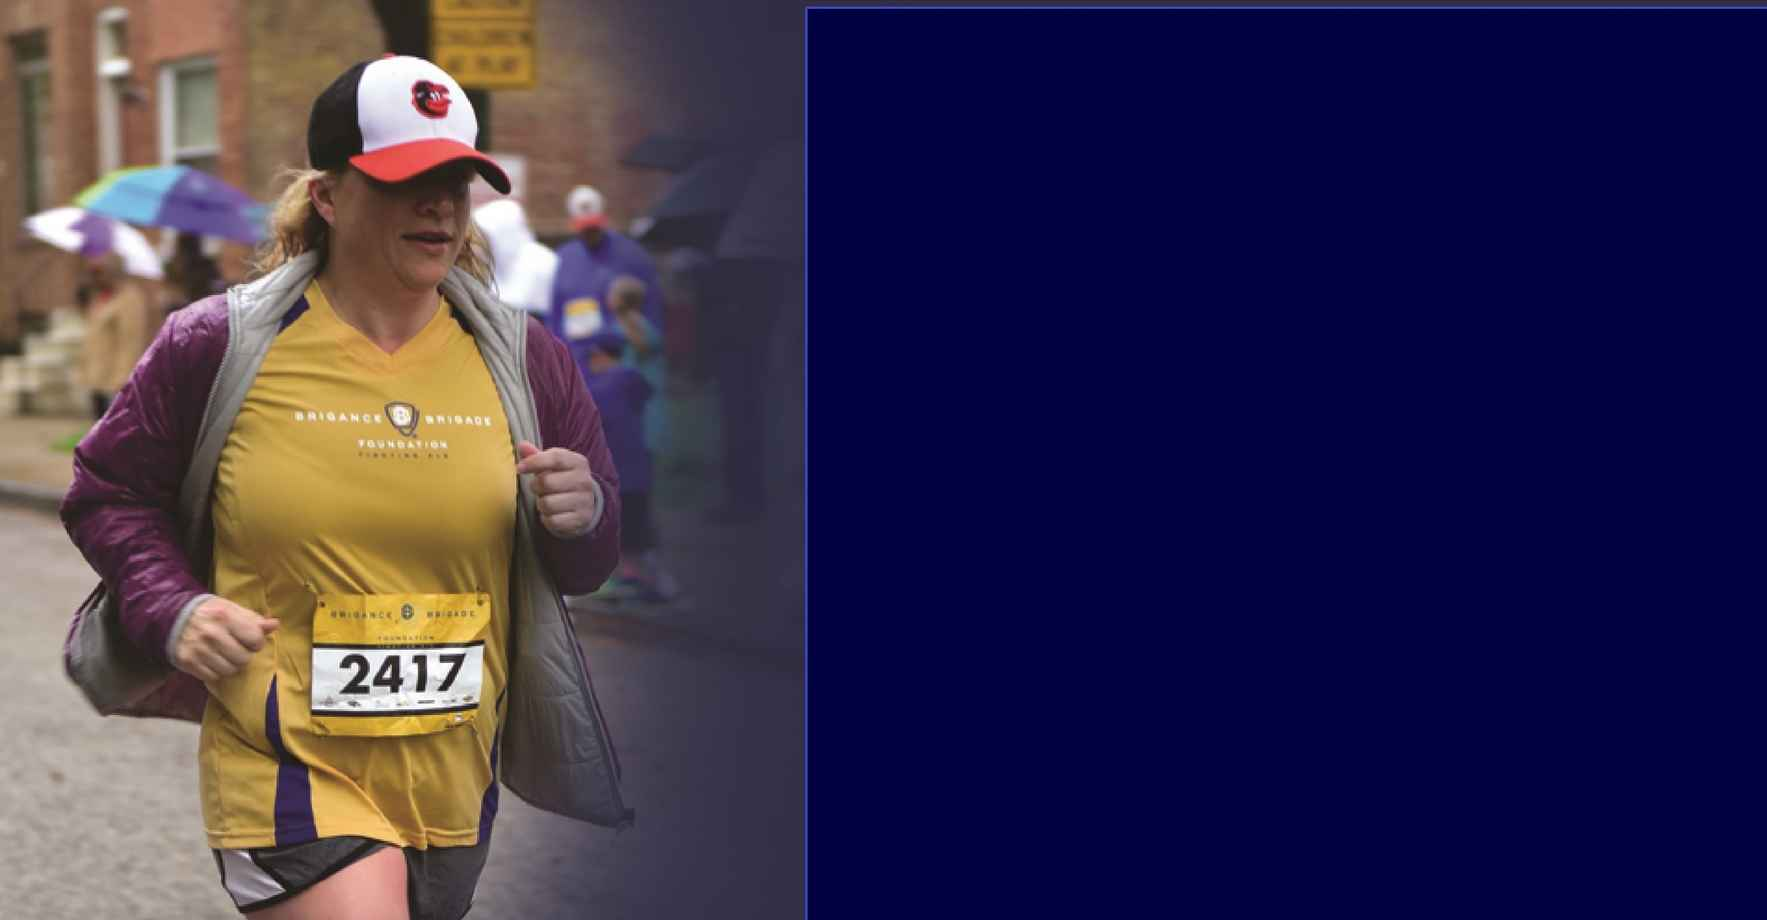 Baltimore Running Festival - Brigance Brigade Foundation charity team image